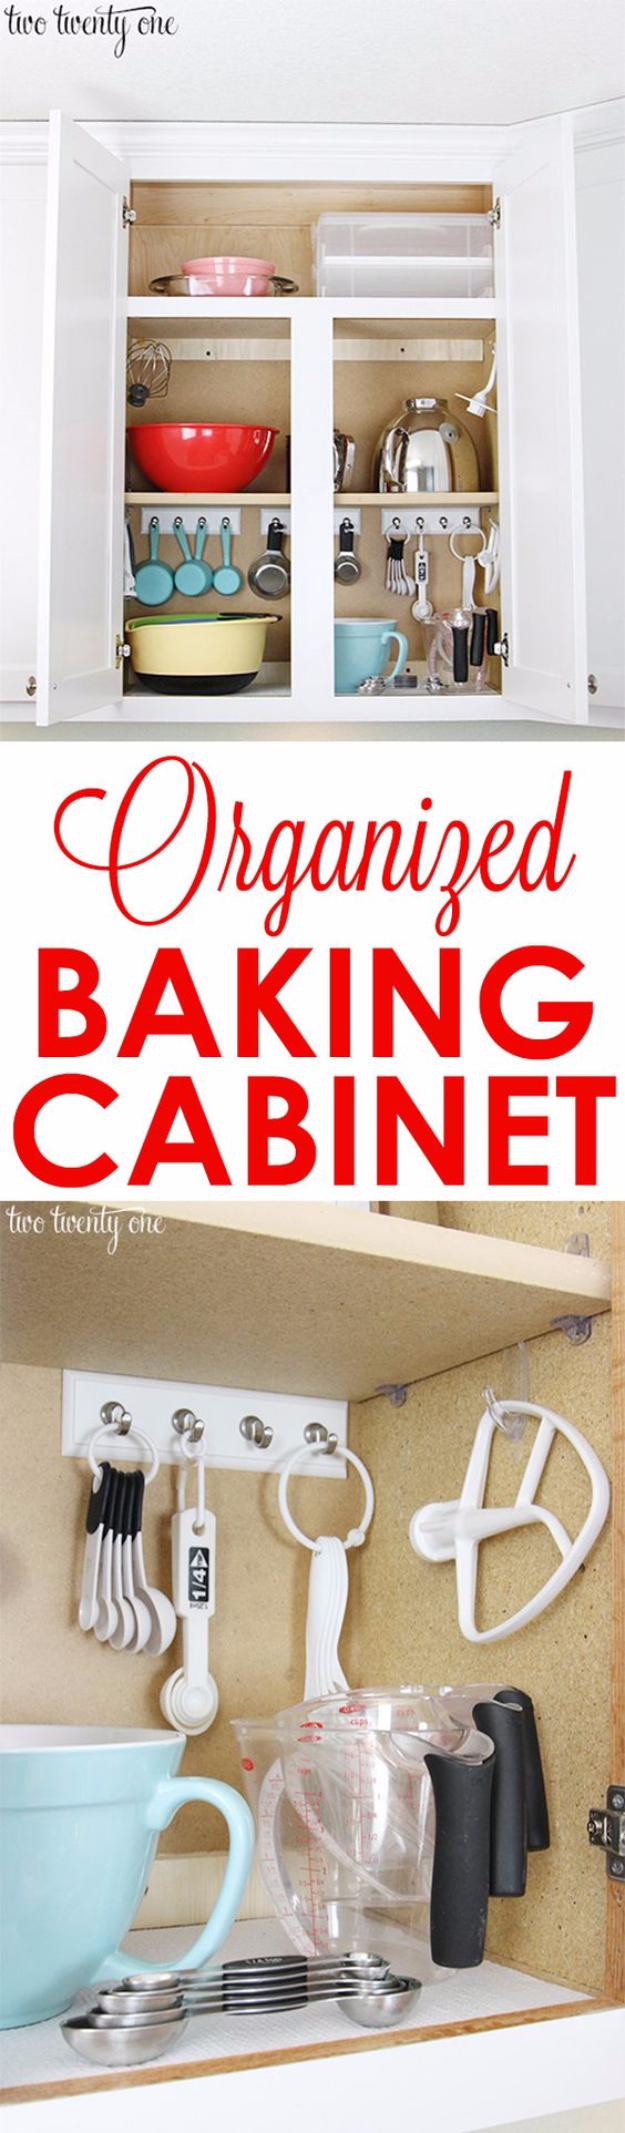 Best Organizing Ideas for the New Year - Organized Baking Cabinet - Resolutions for Getting Organized - DIY Organizing Projects for Home, Bedroom, Closet, Bath and Kitchen - Easy Ways to Organize Shoes, Clutter, Desk and Closets - DIY Projects and Crafts for Women and Men http://diyjoy.com/best-organizing-ideas